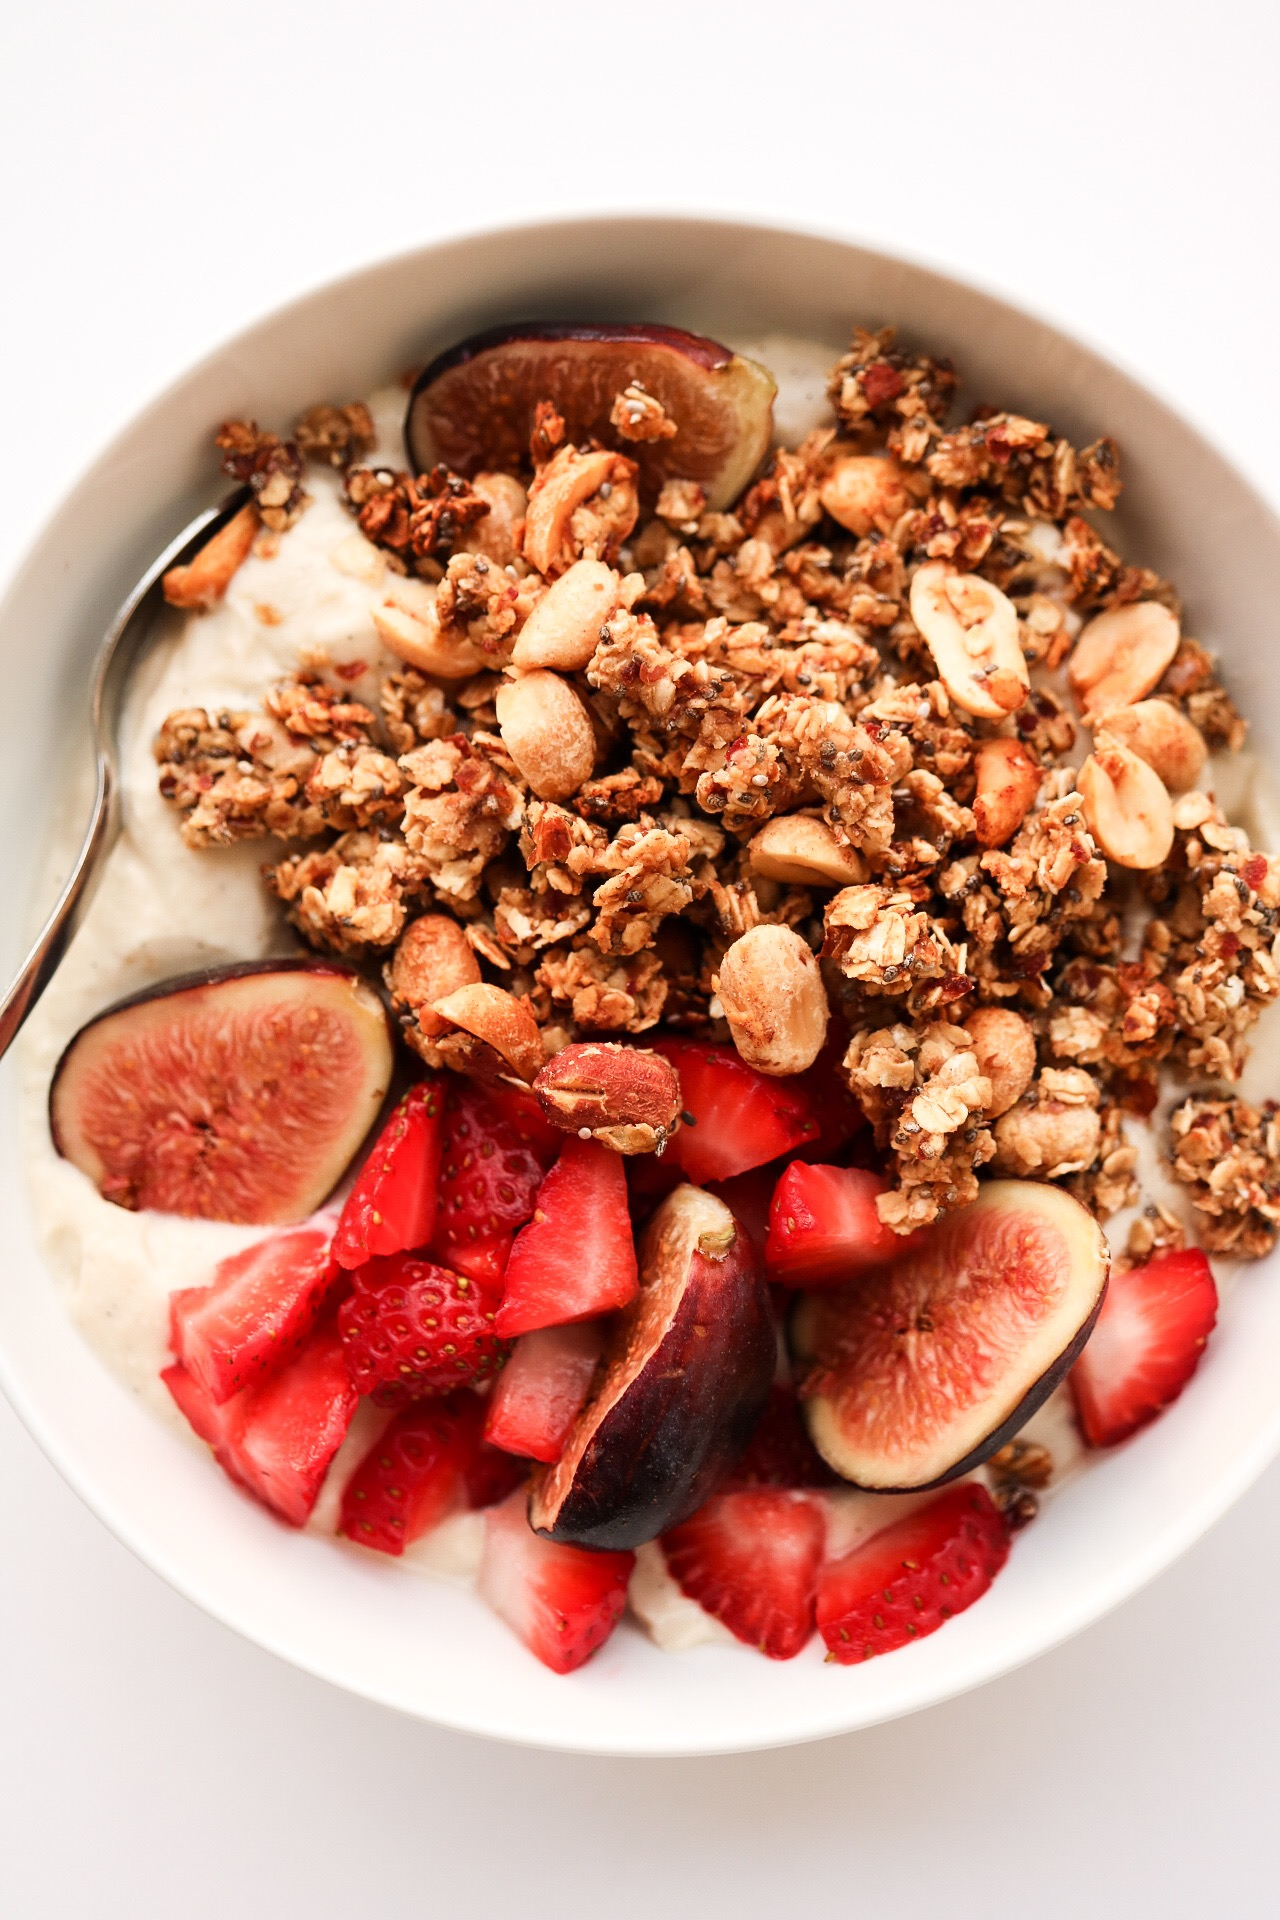 DATE - SWEETENED GRANOLA - INGREDIENTS:1 cup oats1/2 cup nuts of choice2 Tbsp chia seeds2 Tbsp flax seeds1/2 tsp salt1/2 cup dates1/2 cup waterDIRECTIONS:Preheat your oven to 350*F. Line a baking sheet with parchment paper. In a Medium bowl, mix together the oats, nuts, salt, chia and flax seeds and set aside. In a food processor, mix together your dates and water until a paste forms, Add your date paste to the dry ingredients, and mix until everything is fully incorporated. Place the granola on your baking sheet, and bake for around 25 minutes - flipping halfway through. Best served over ice cream, smoothies, and yogurt!